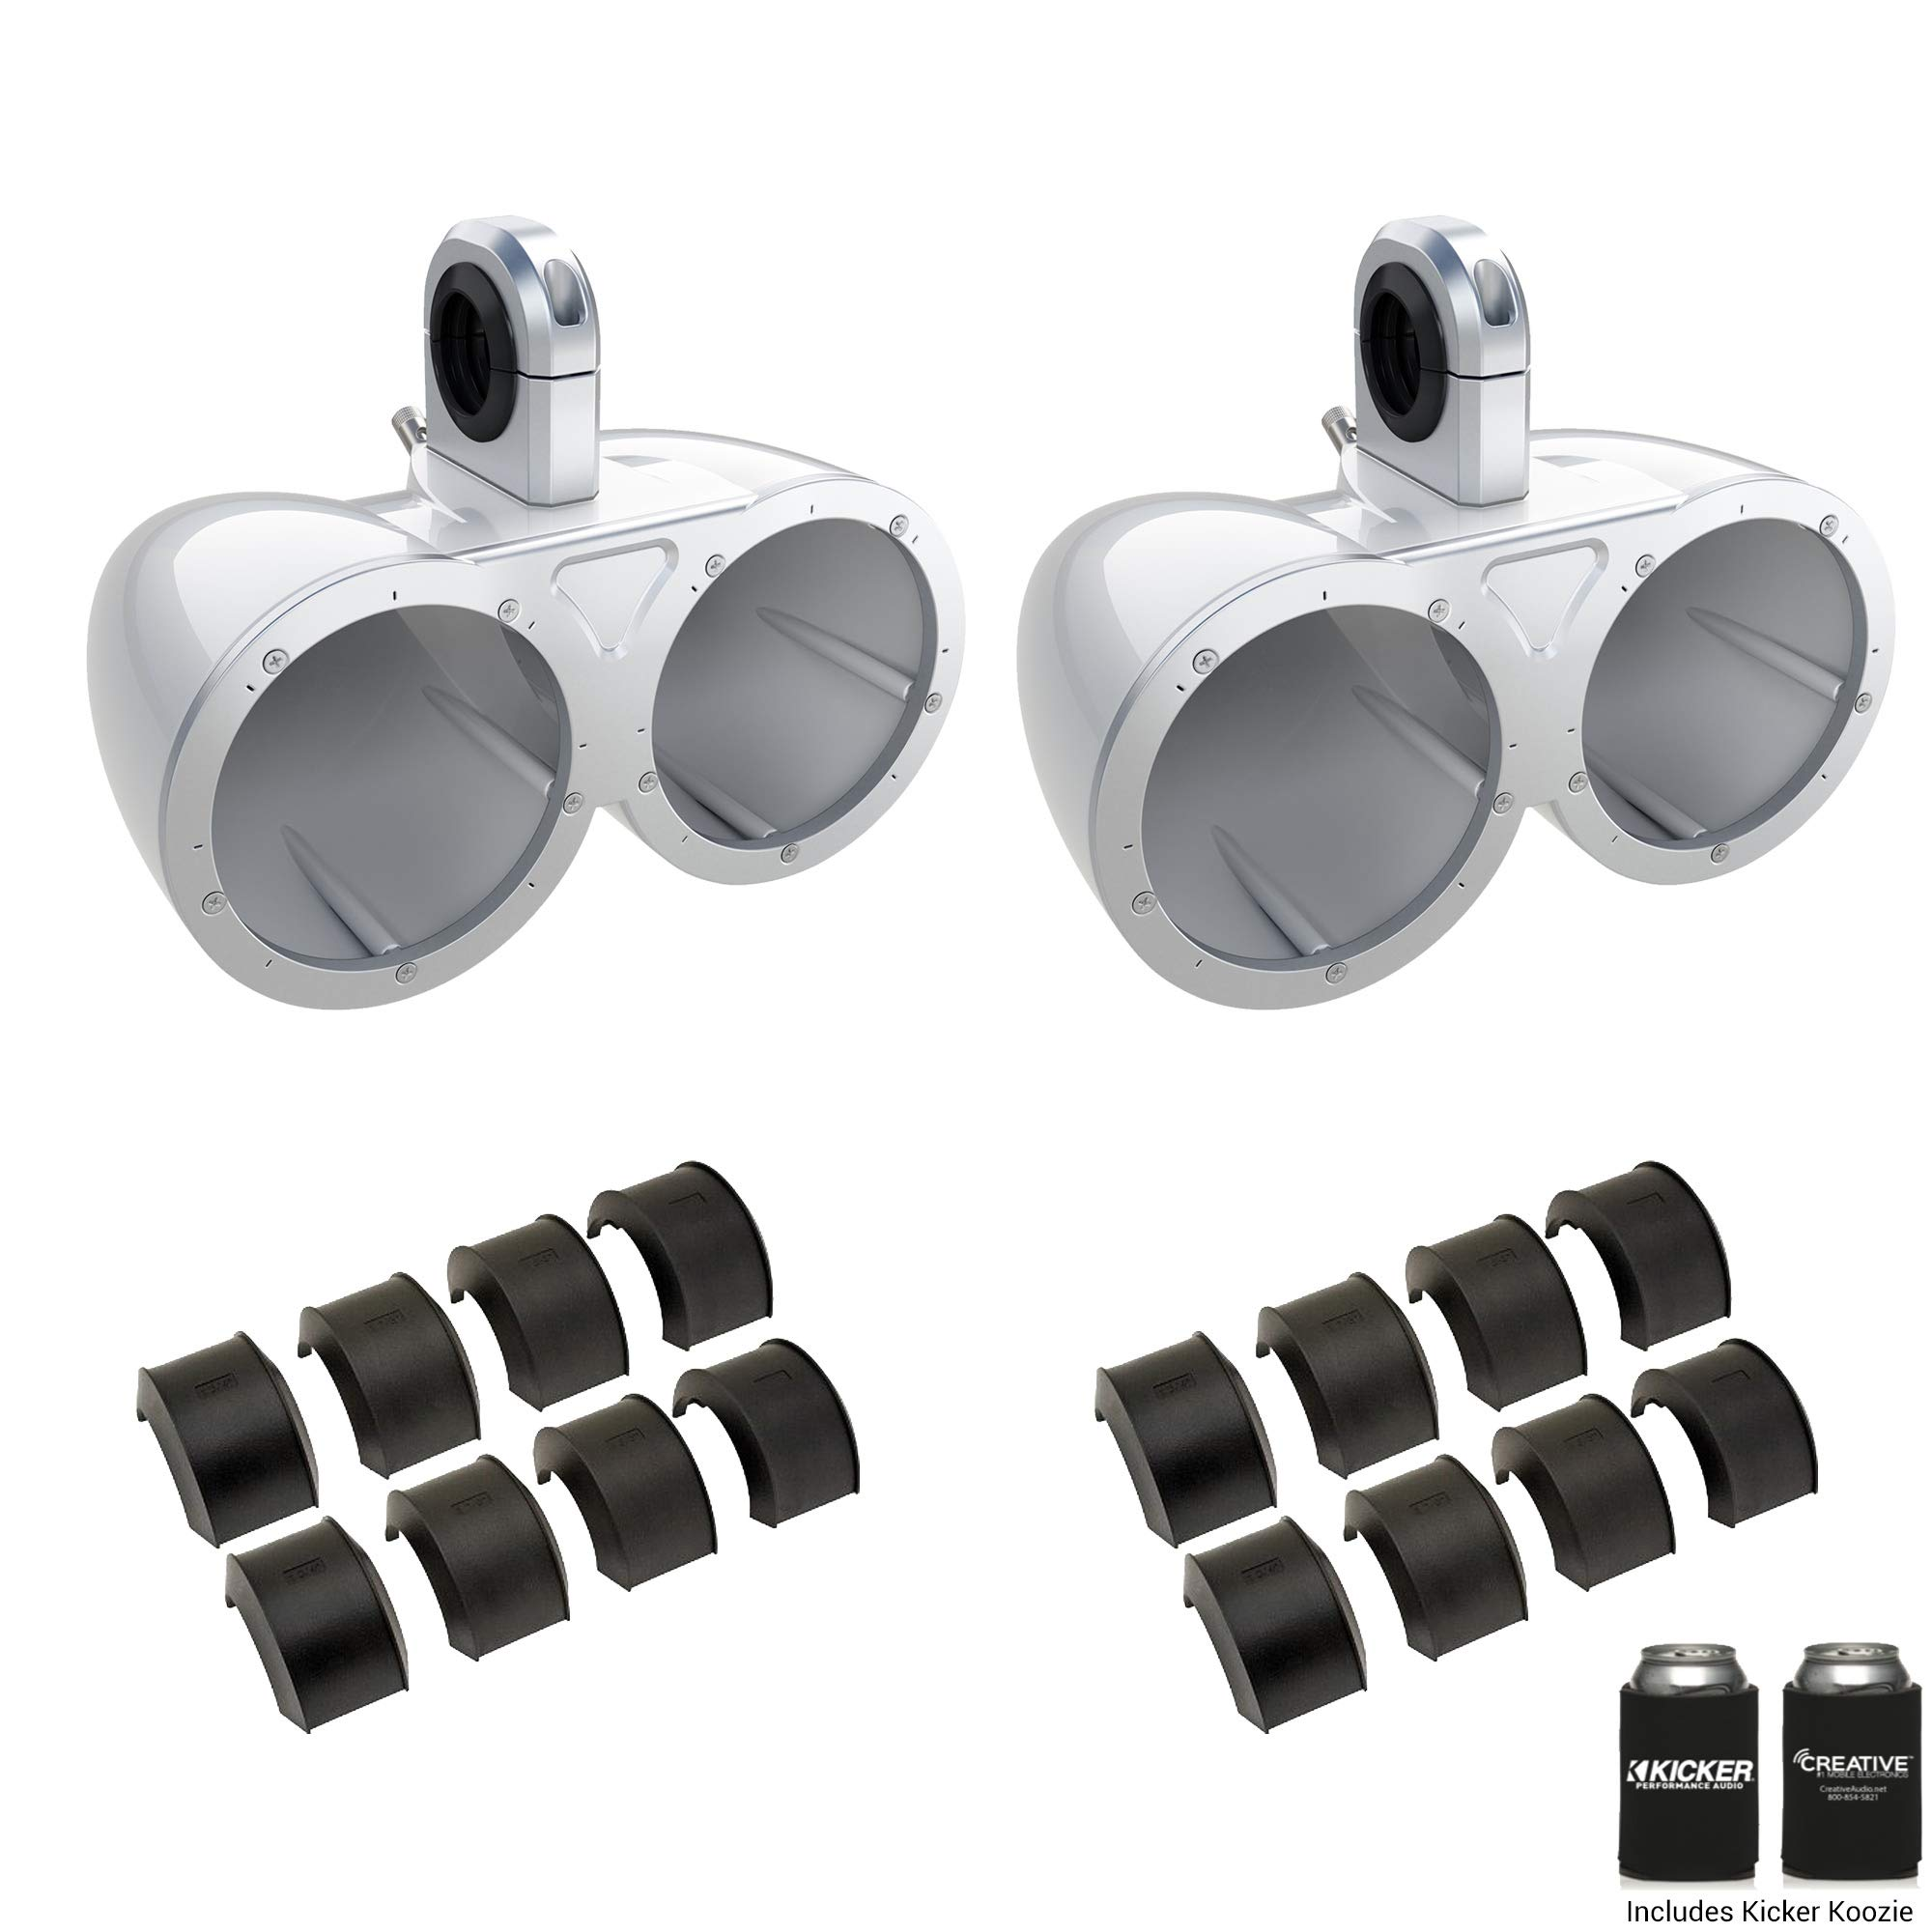 Kicker KMTEDW White Dual 6.5'' Empty Wake Tower/Roll Bar Enclosures with KMTAP Adapter Pack for UTVs